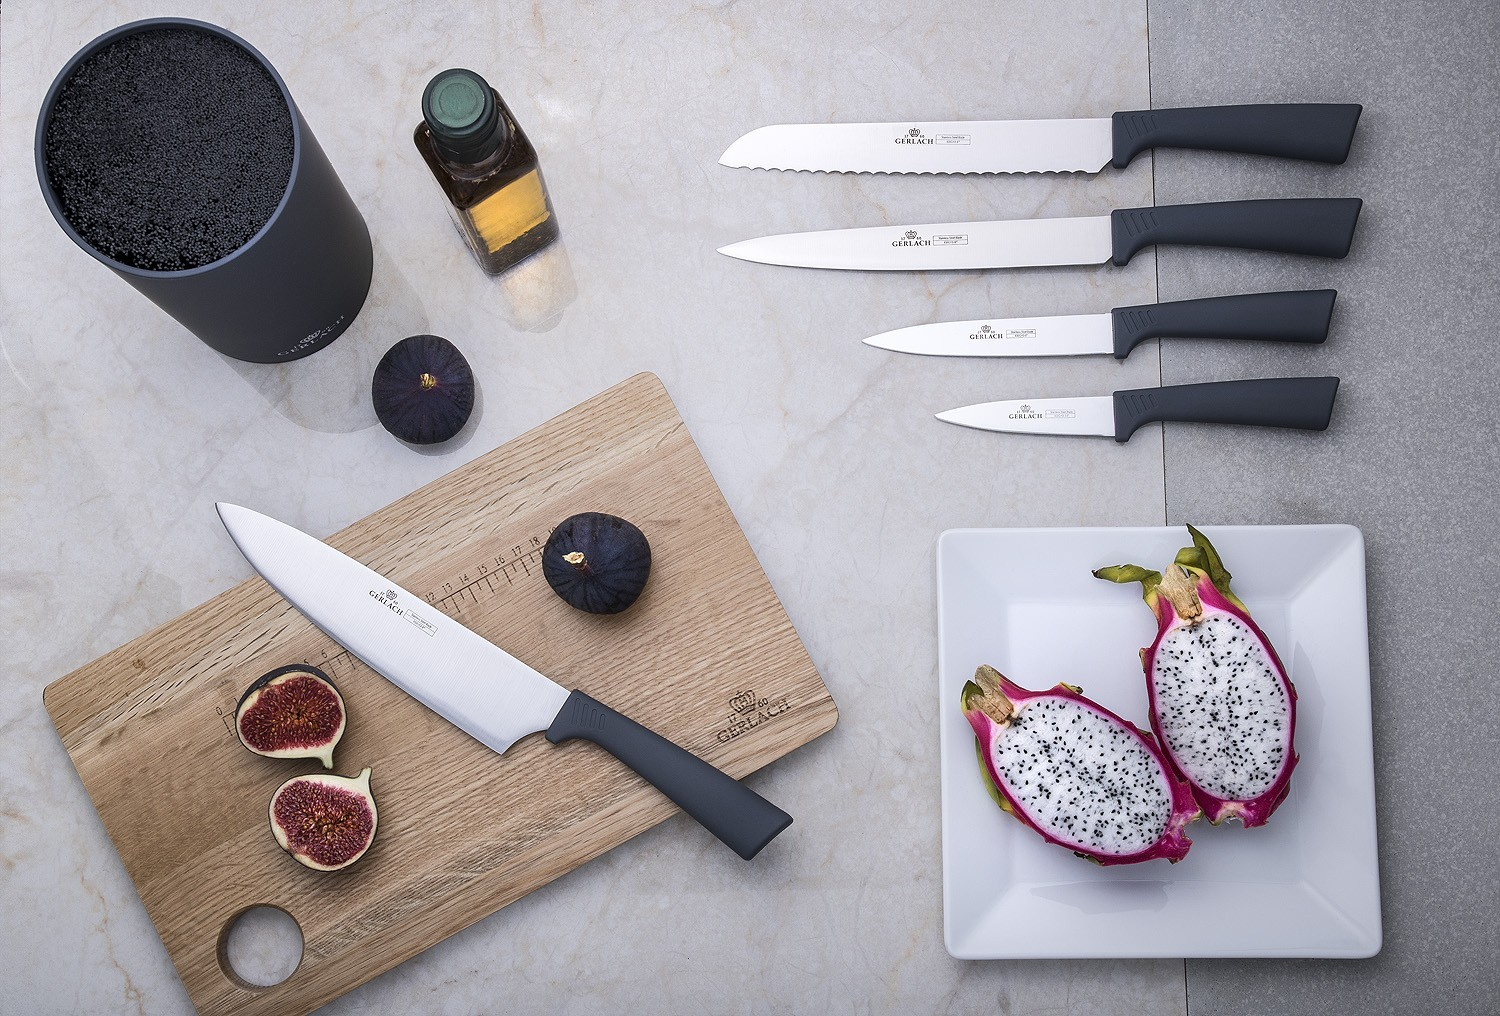 A SMART GREY kitchen knife